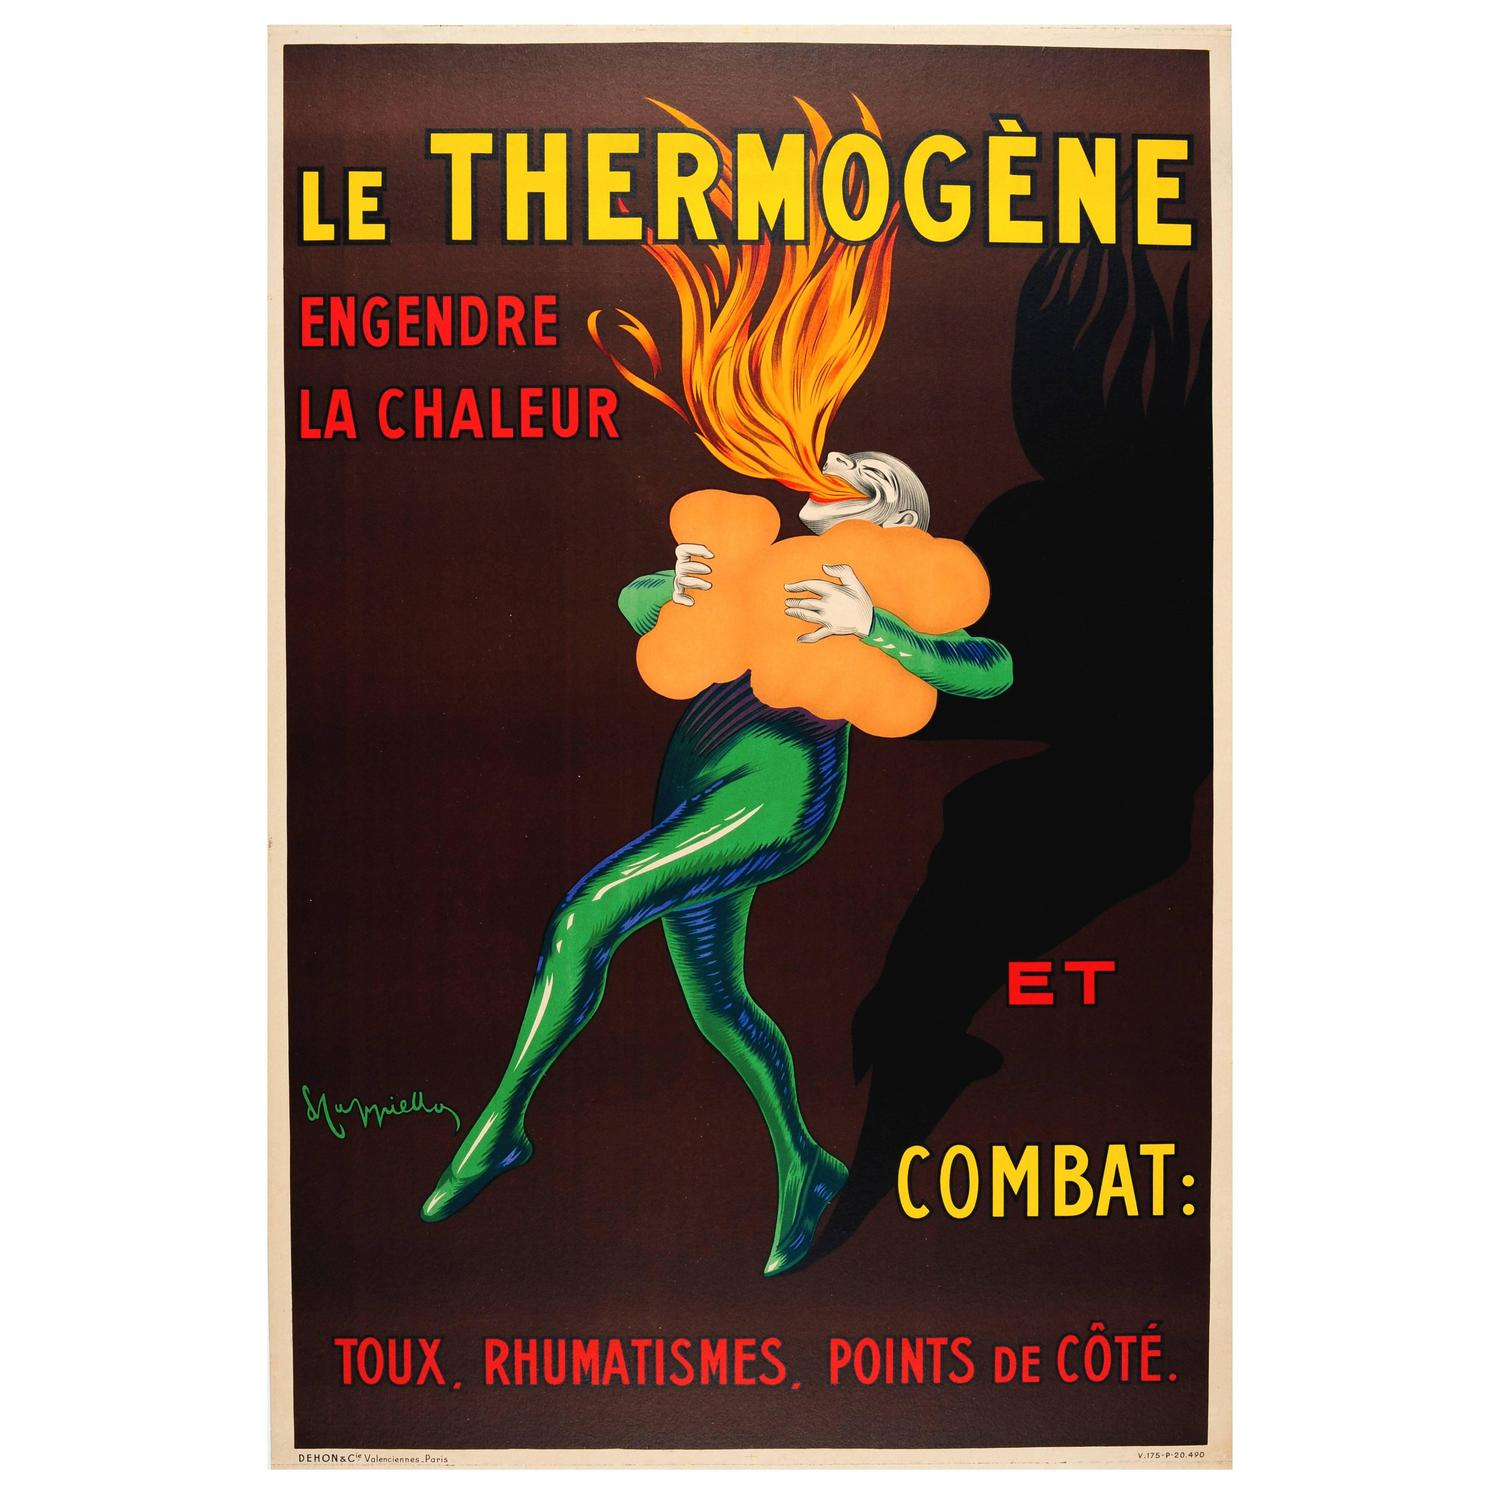 Poster design 1920s - Original Vintage Advertising Poster Le Thermogene Iconic Design By Cappiello